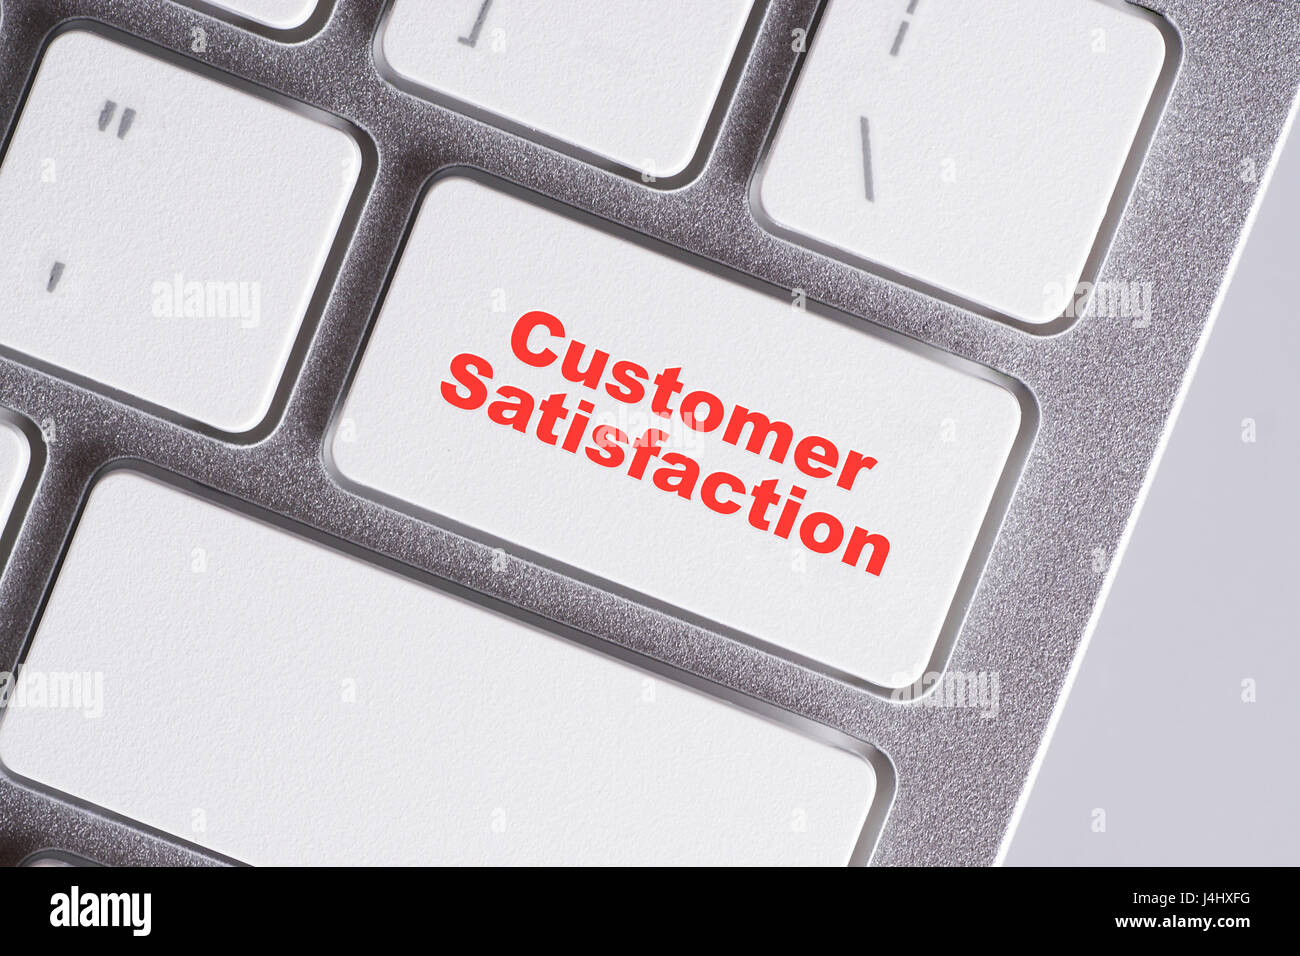 'Customer Satisfaction' red words on white keyboard - online, education and business concept - Stock Image